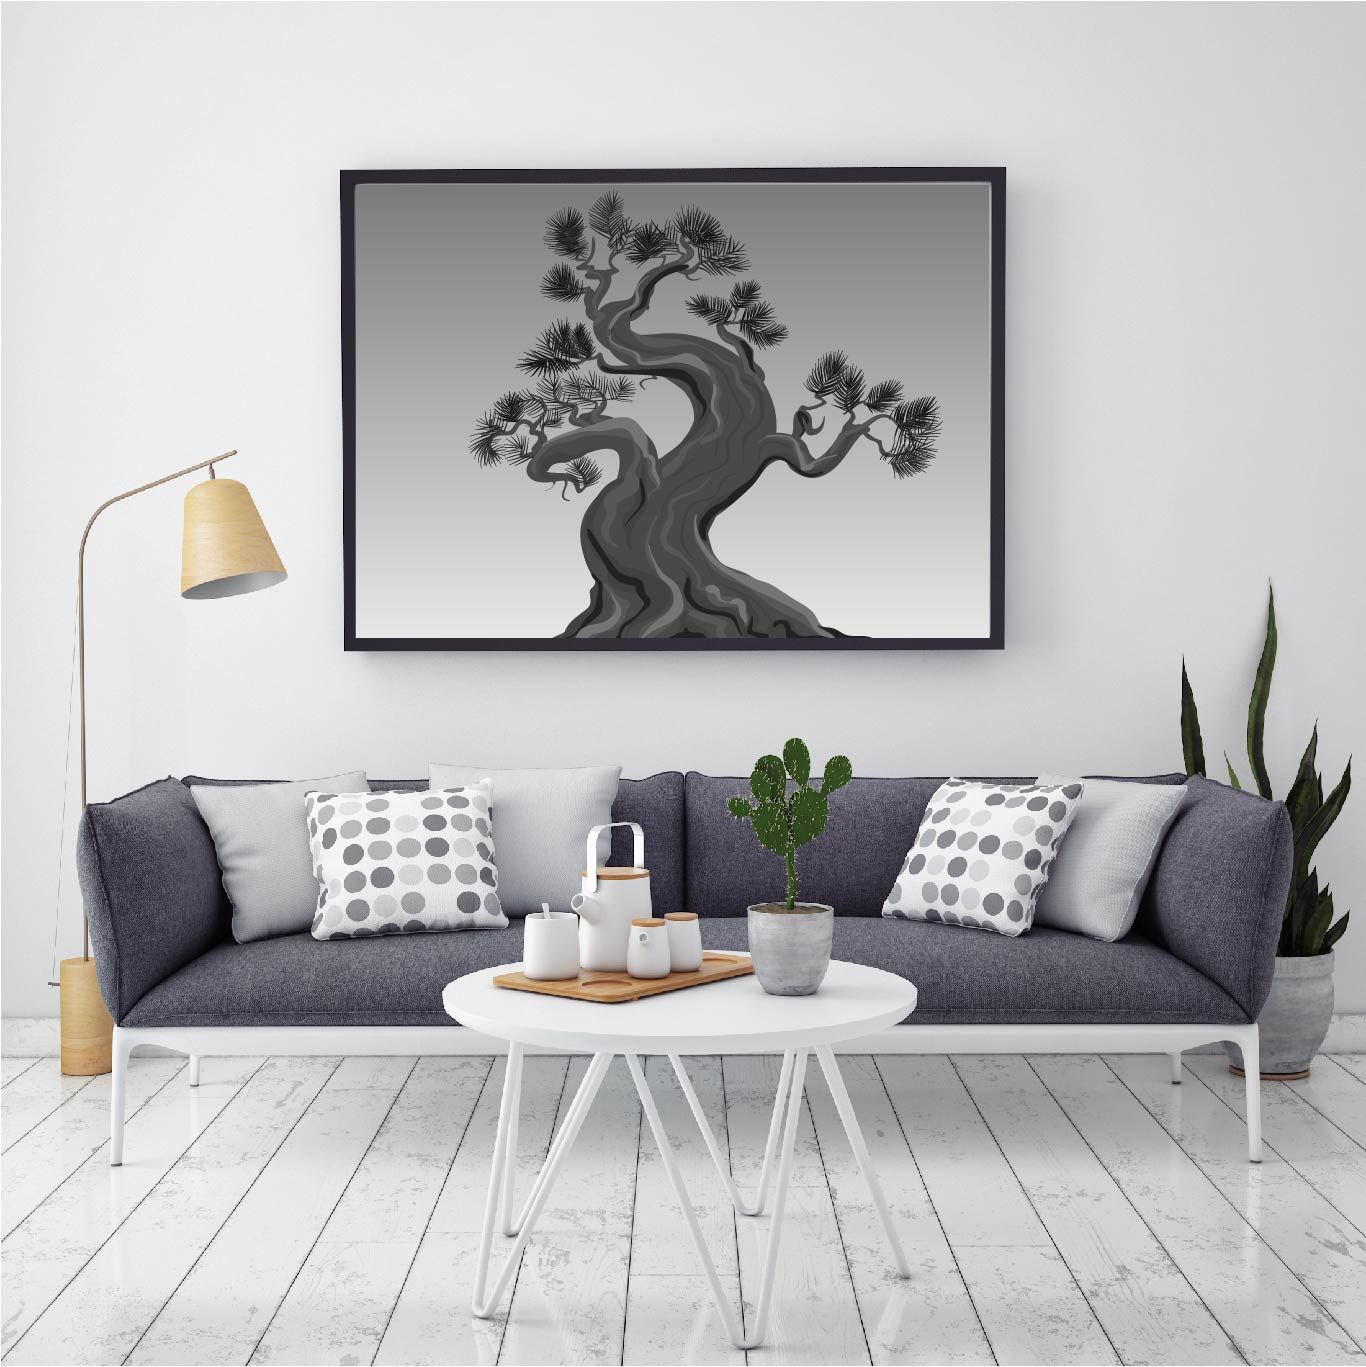 Black and white nature poster for living room office design home